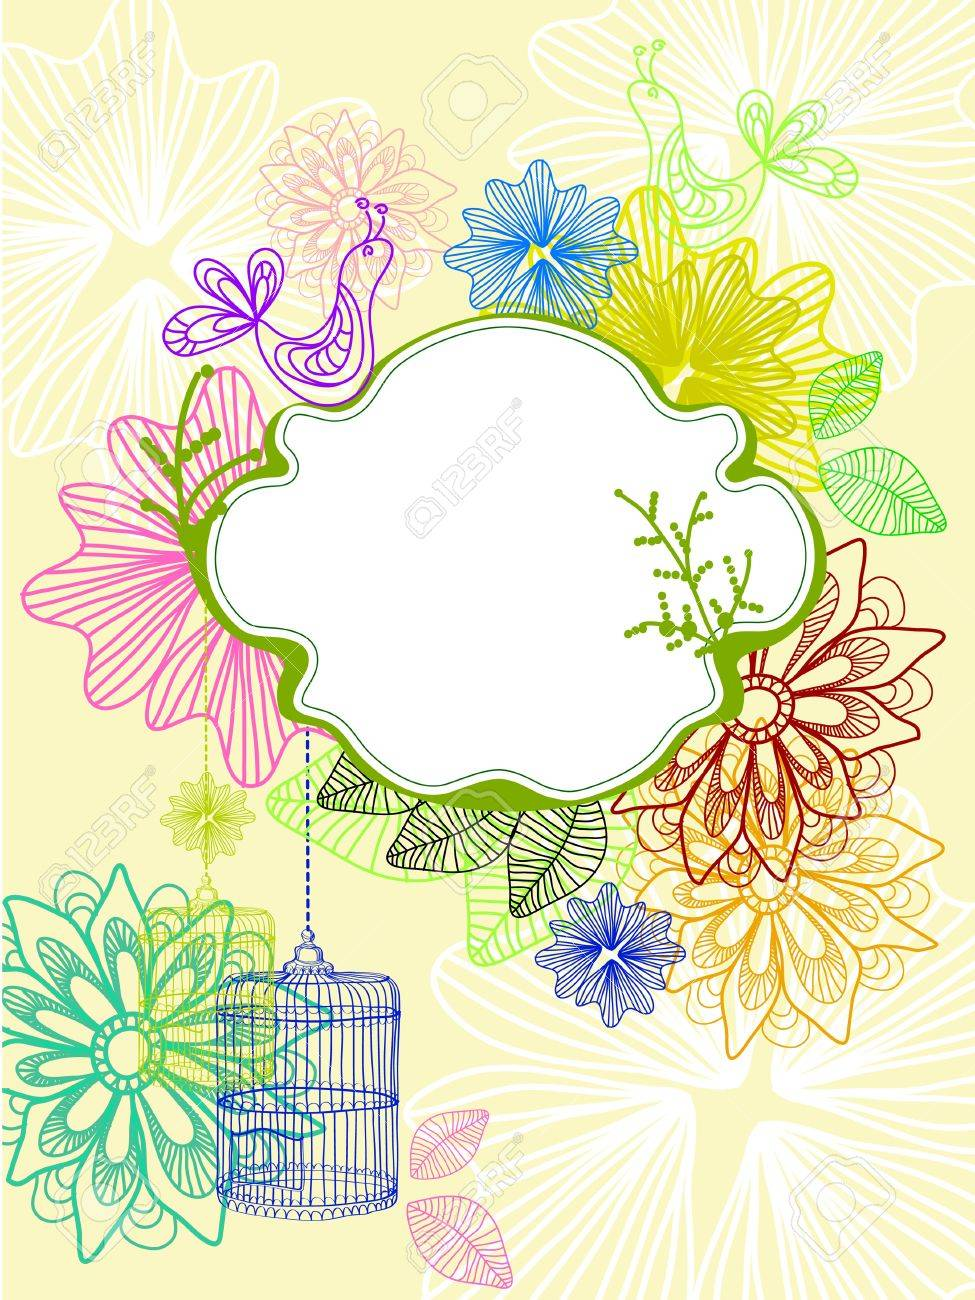 Beautiful background with cage and flowers, bright illustration Stock Vector - 12437425